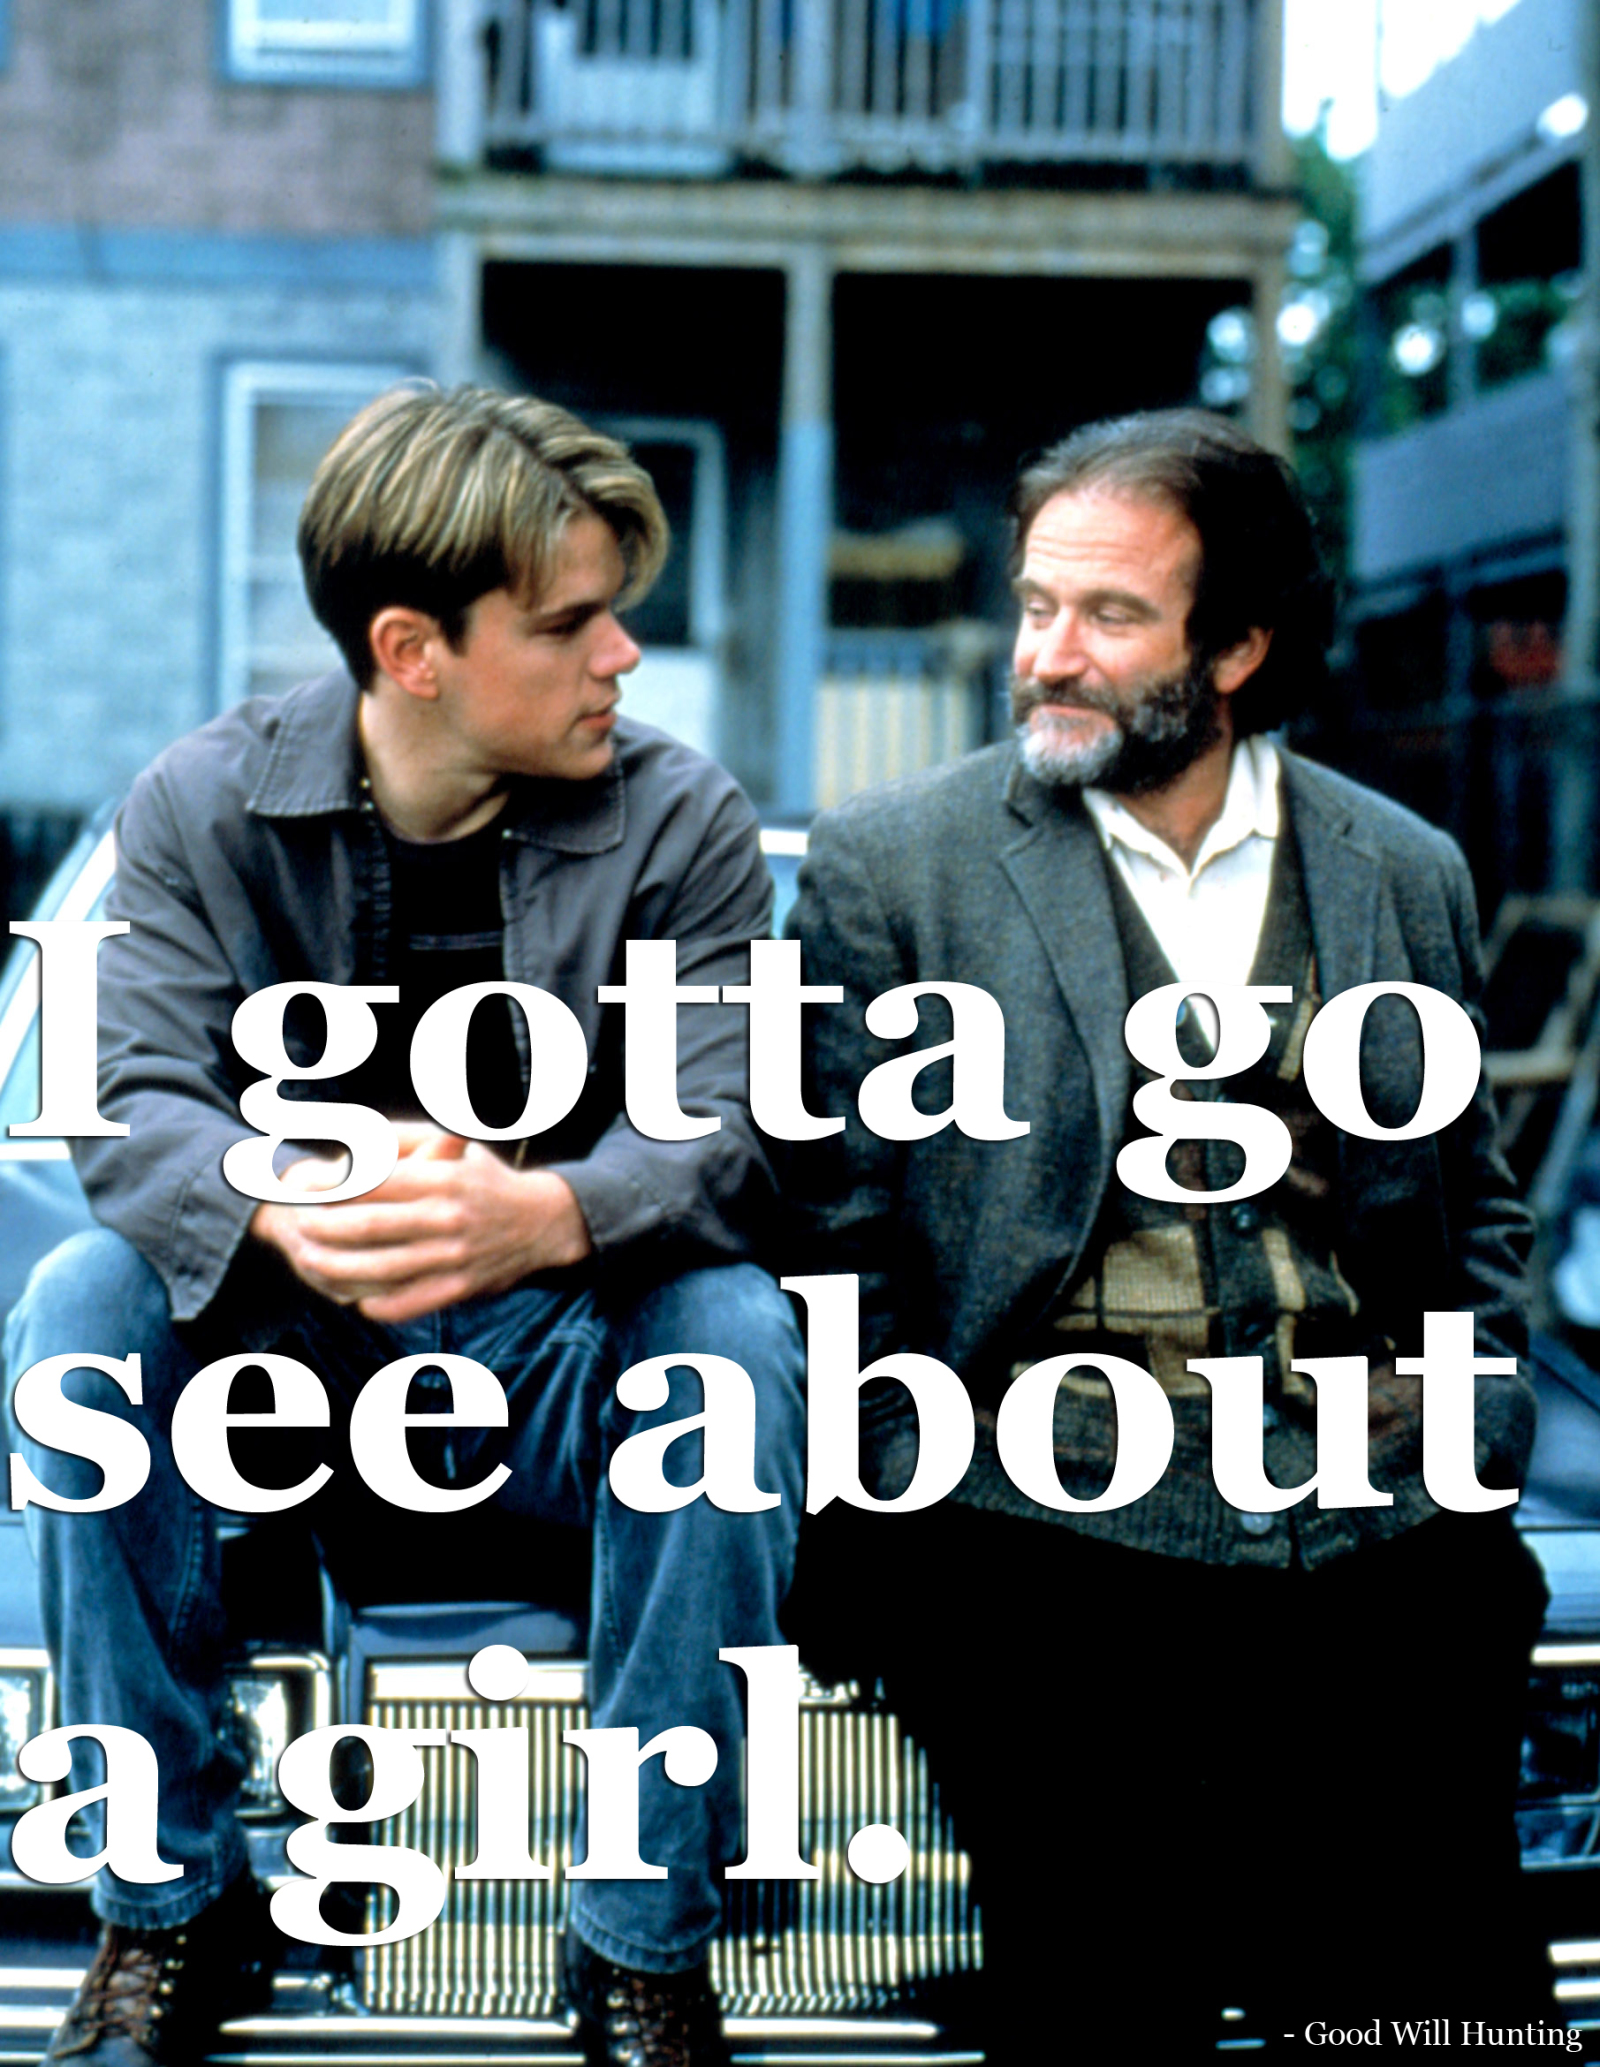 good will hunting movie themes Good will hunting themes intelligence on the surface, good will hunting is just a story about a really smart kid who doesn't know what he wants to do with his life.